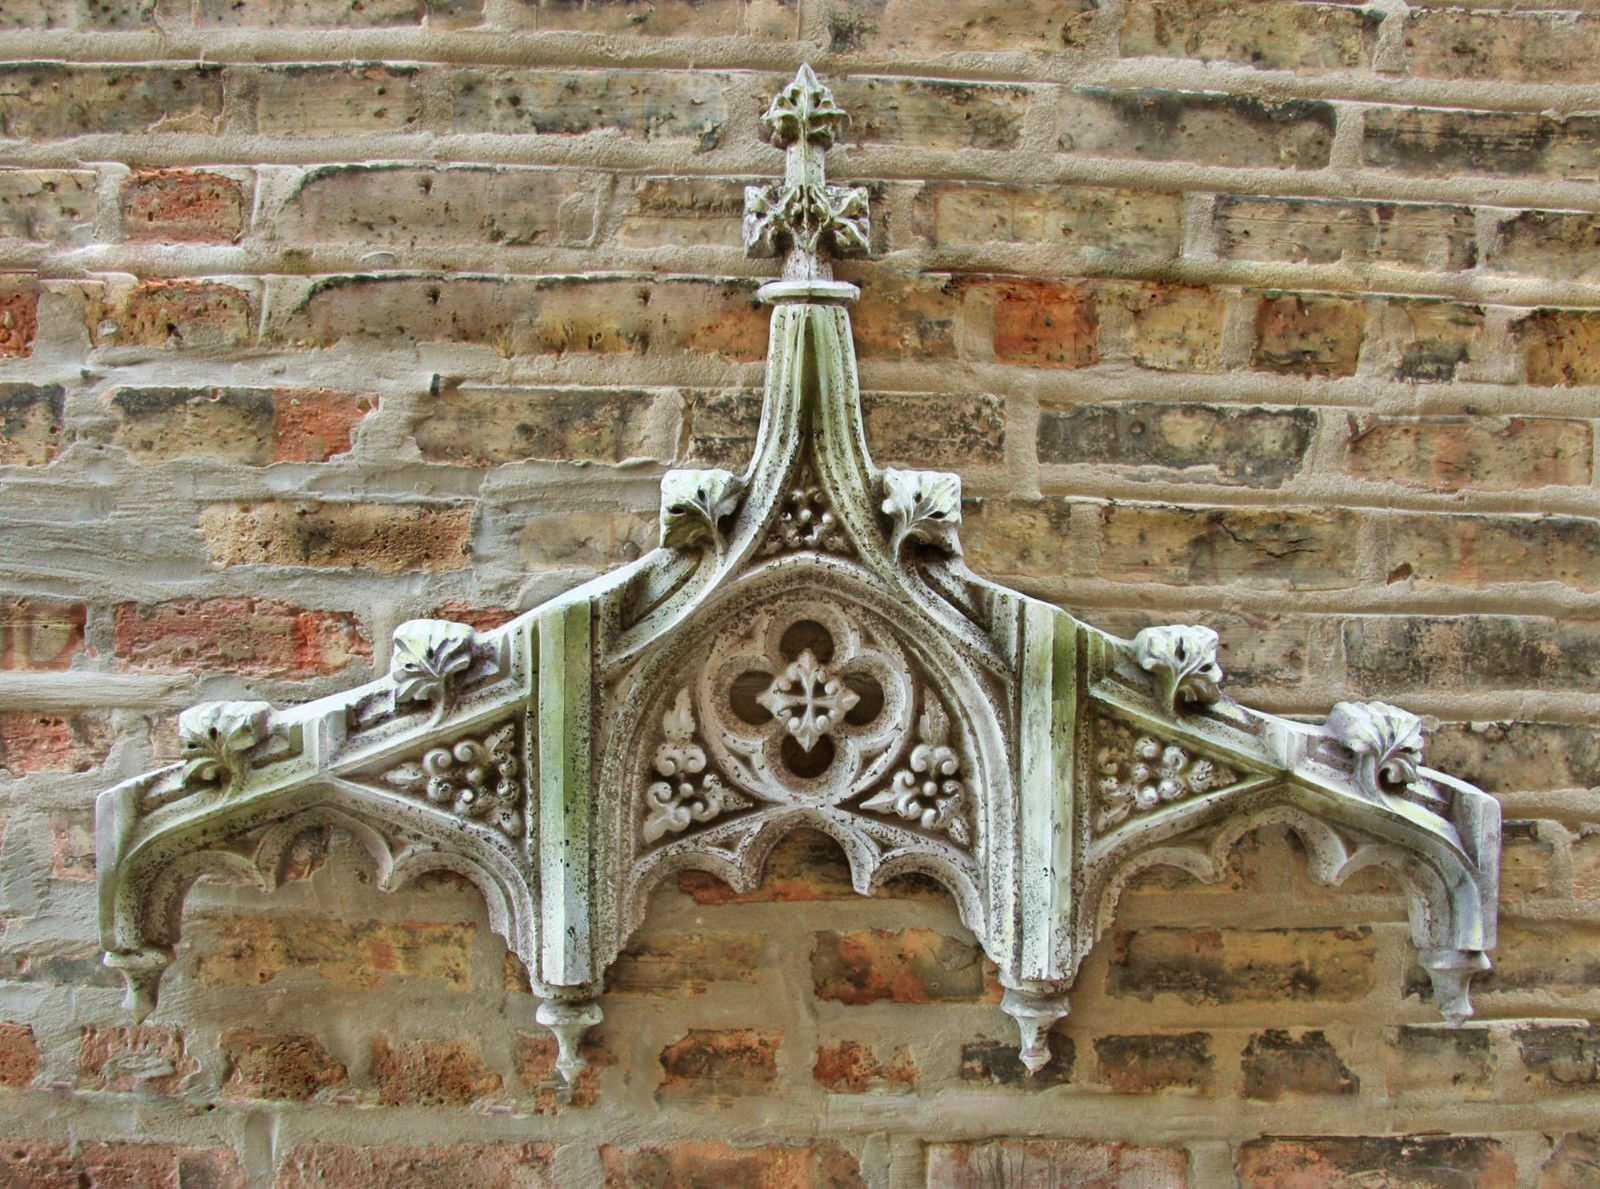 Chartres tracery header garden wall art decor sculpture by orlandi